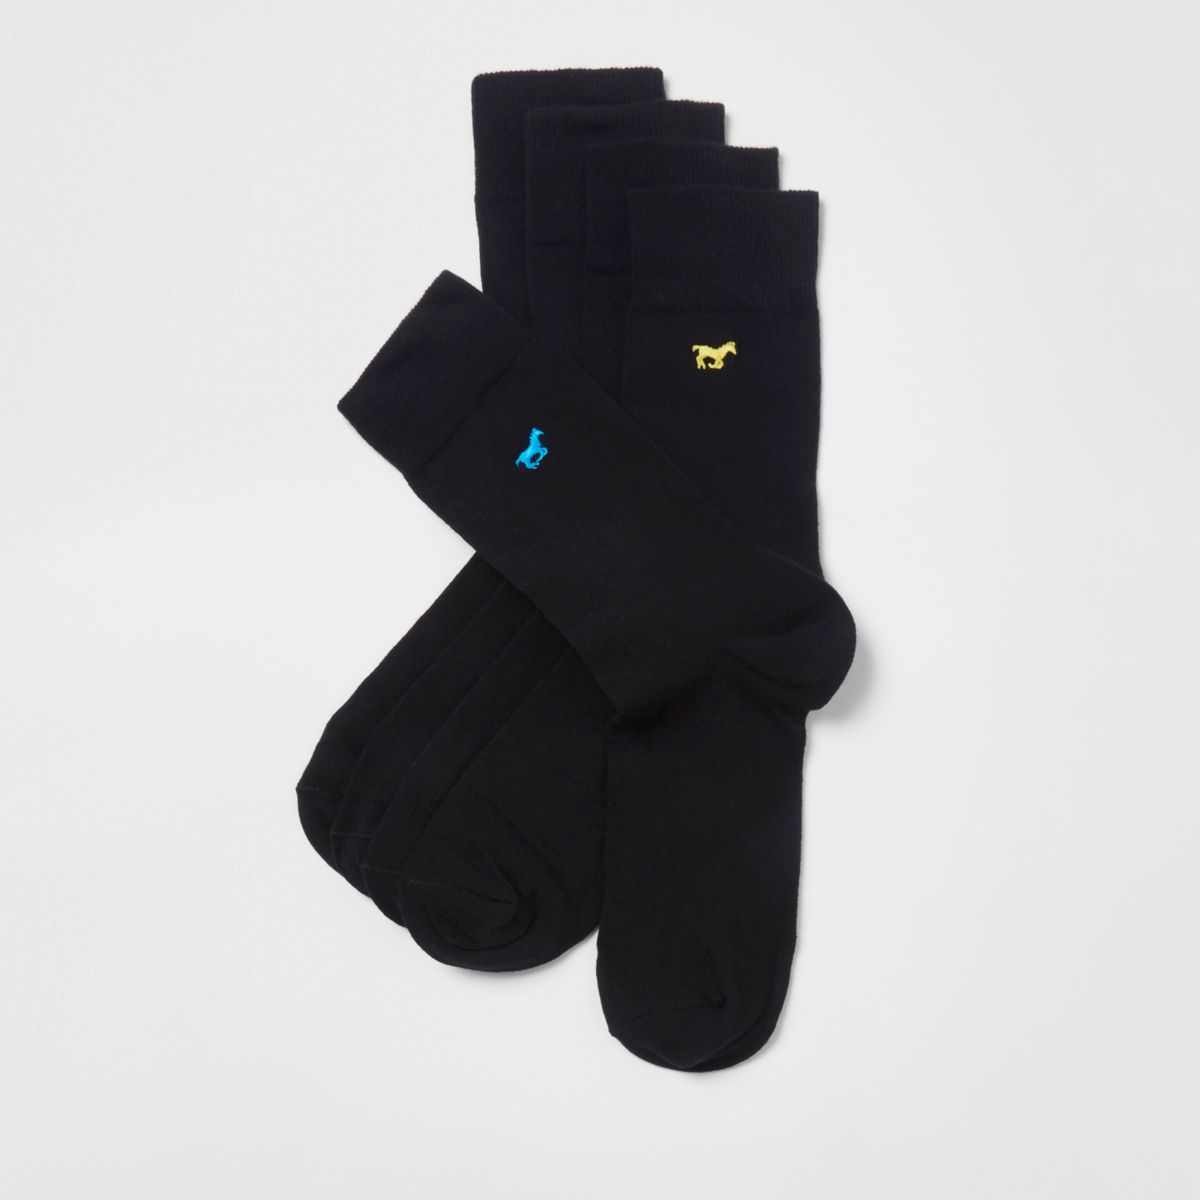 Black horse embroidered socks multipack